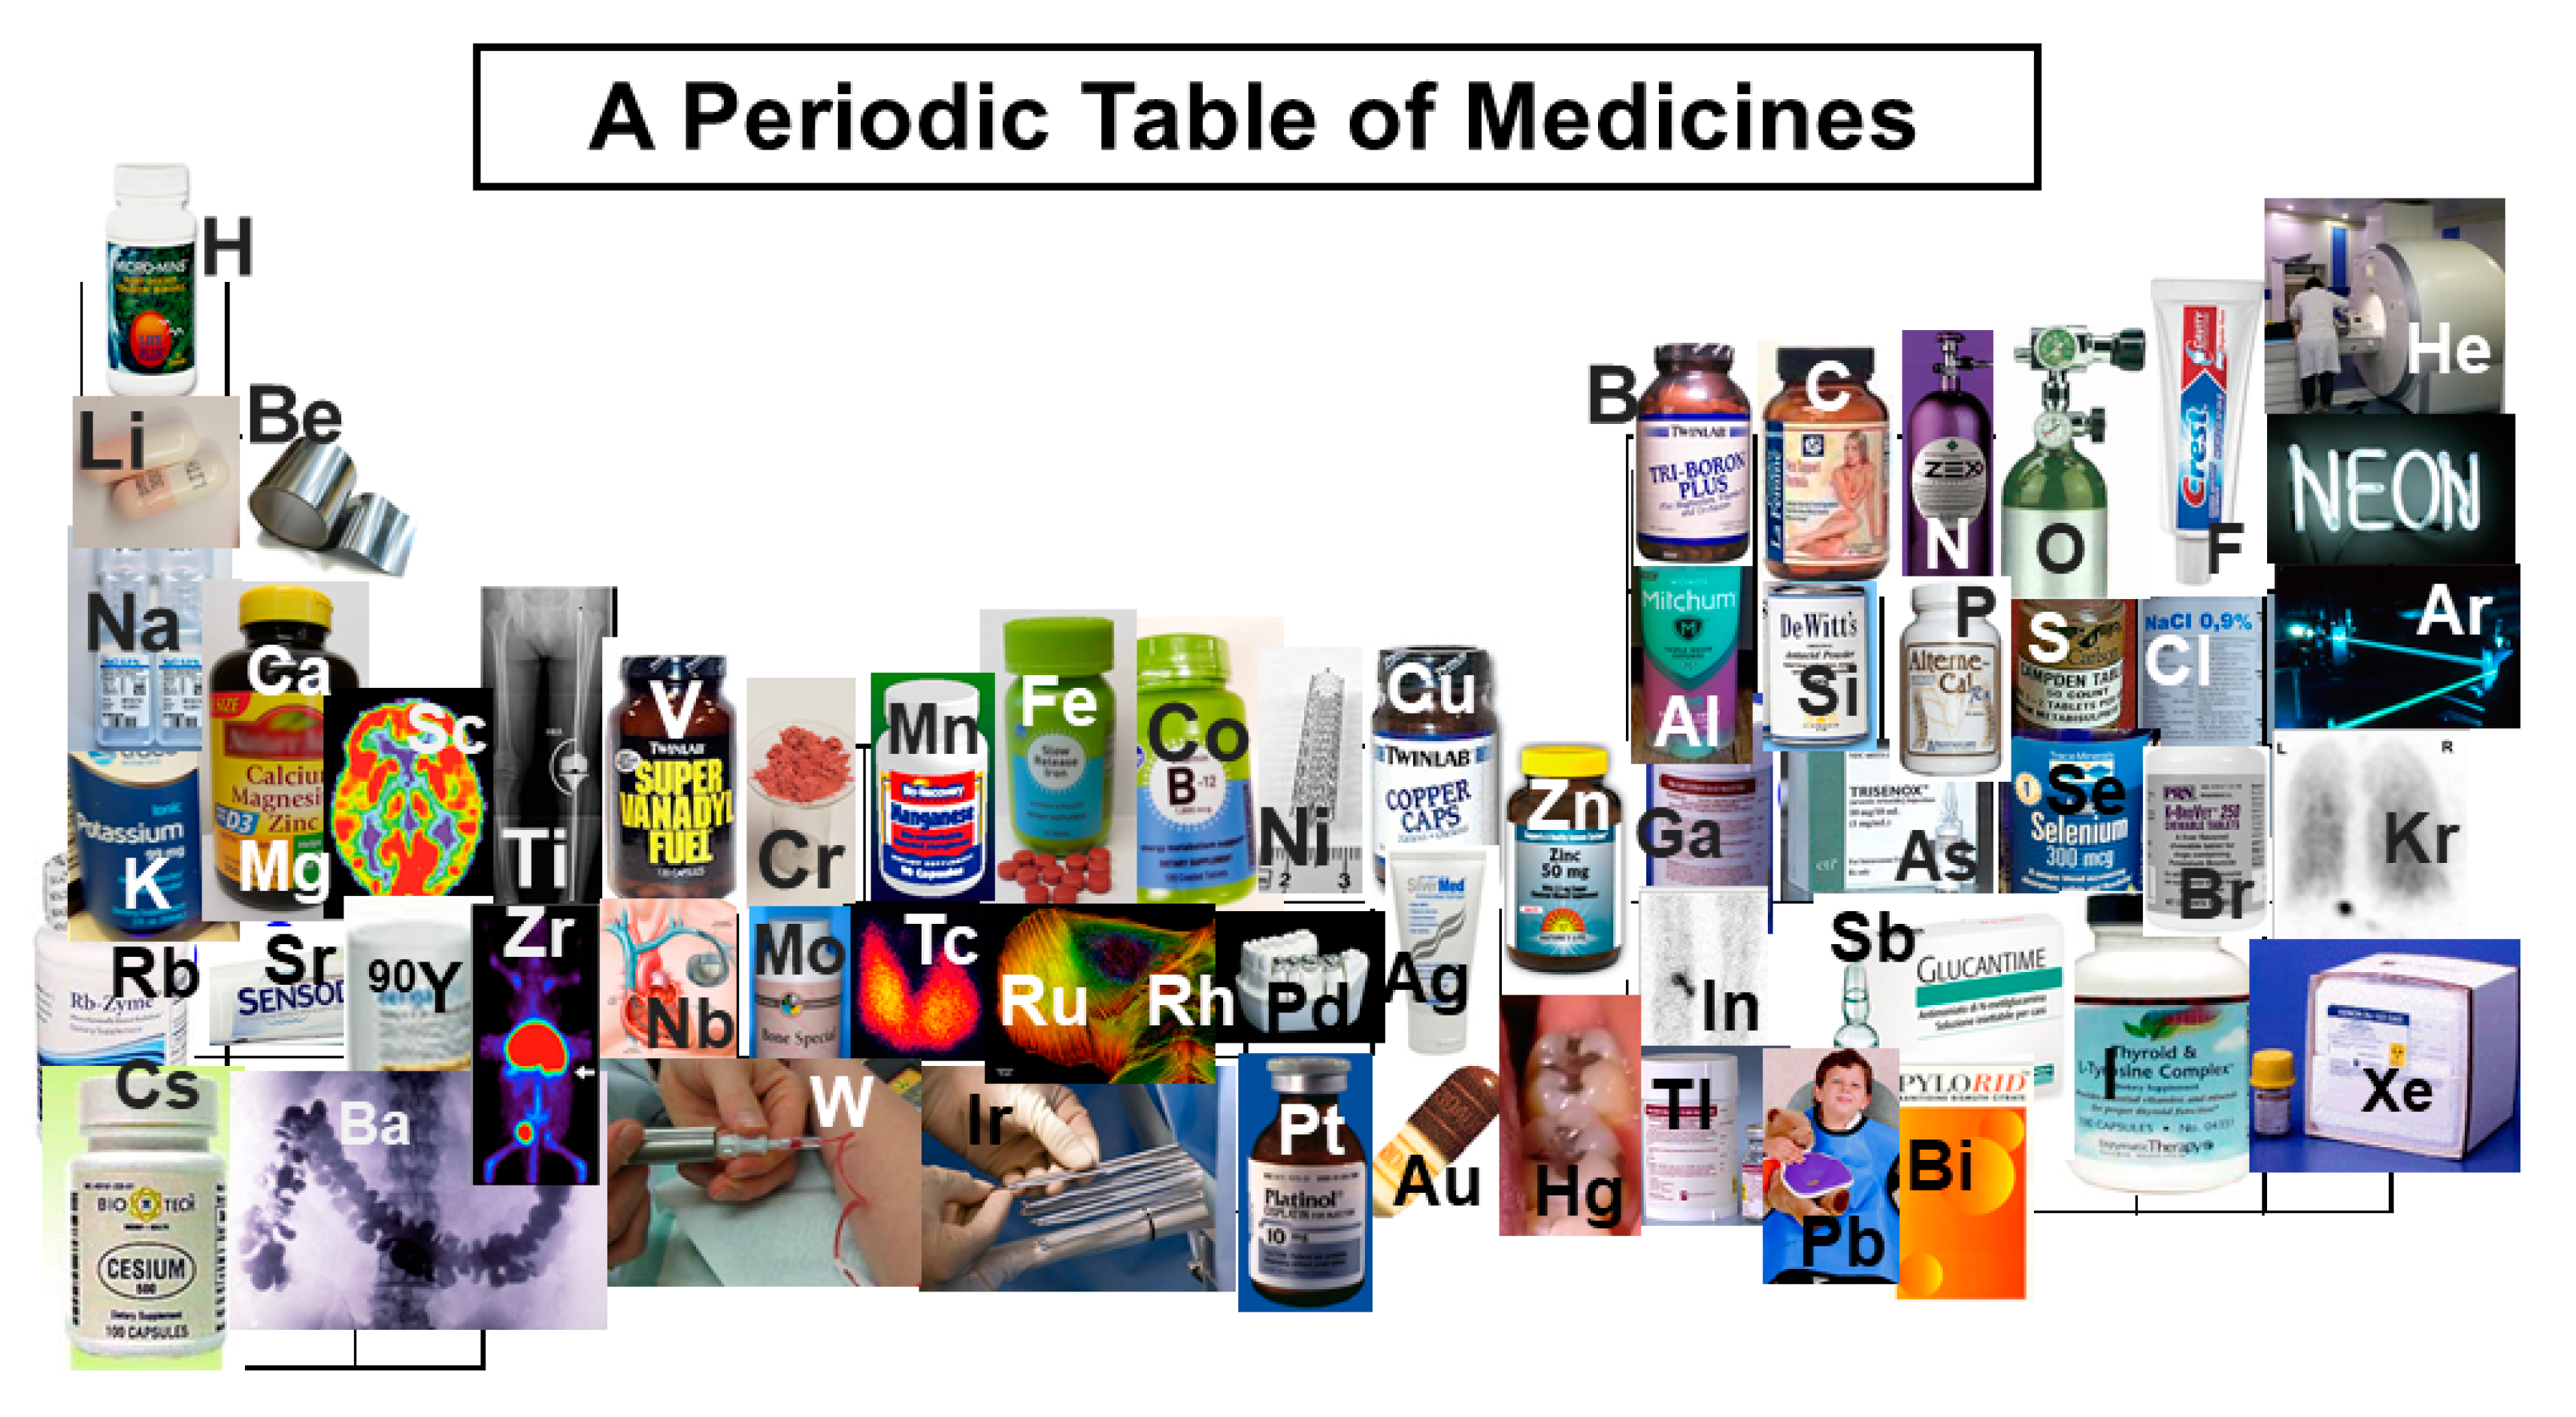 Inorganics Free Full Text The First Row Transition Metals In The Periodic Table Of Medicine Html